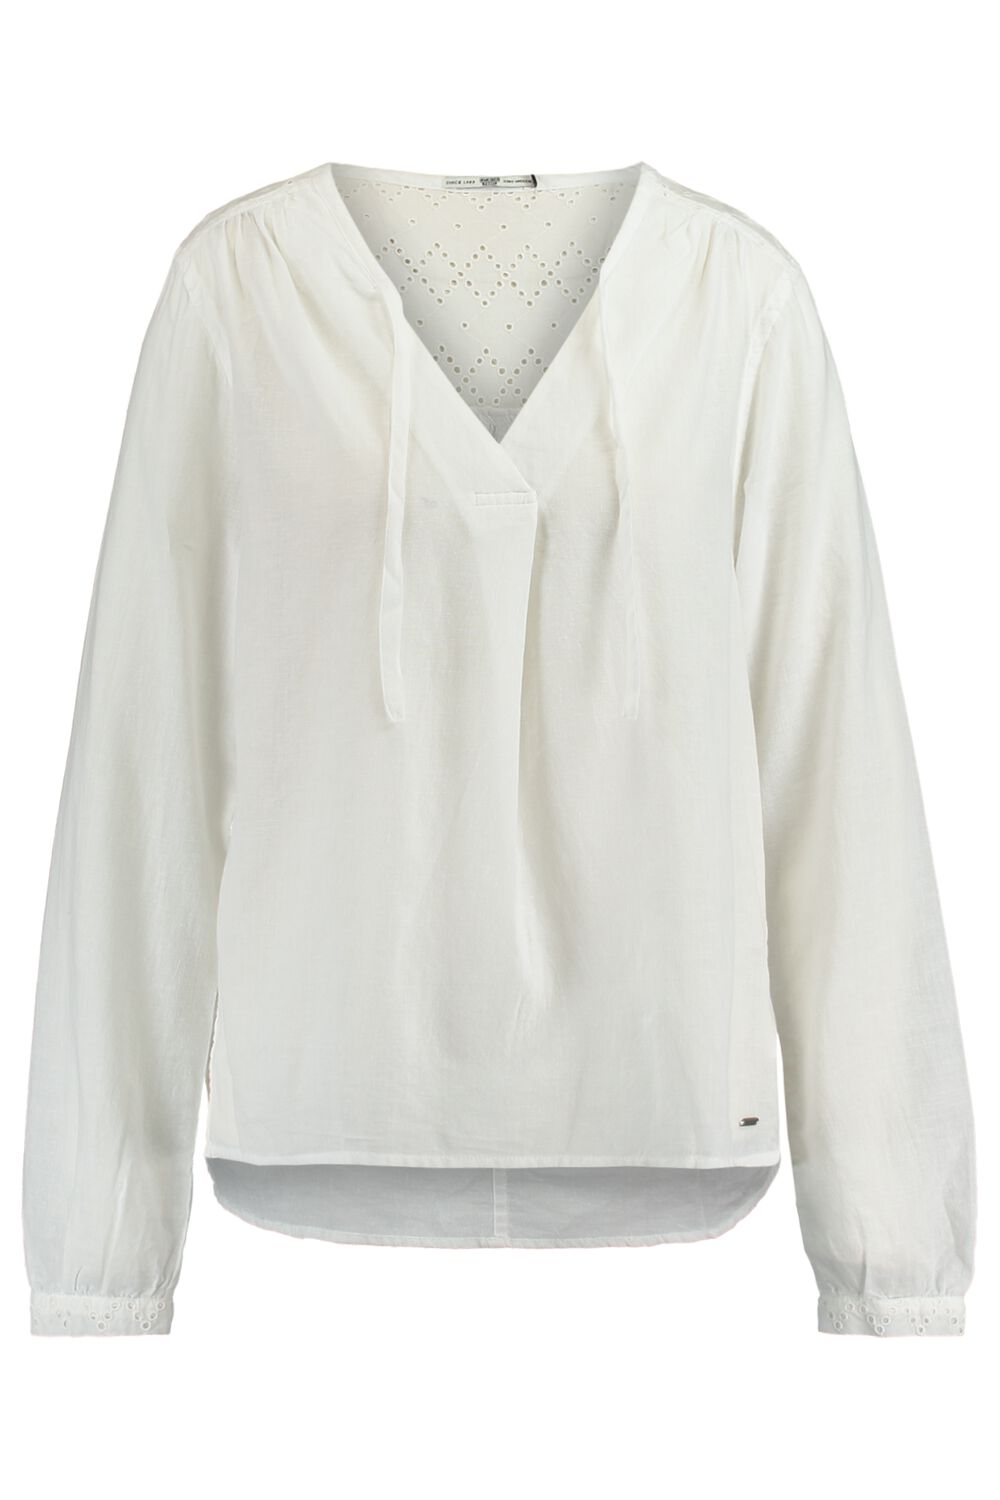 America Today Dames Blouse Blossom Wit